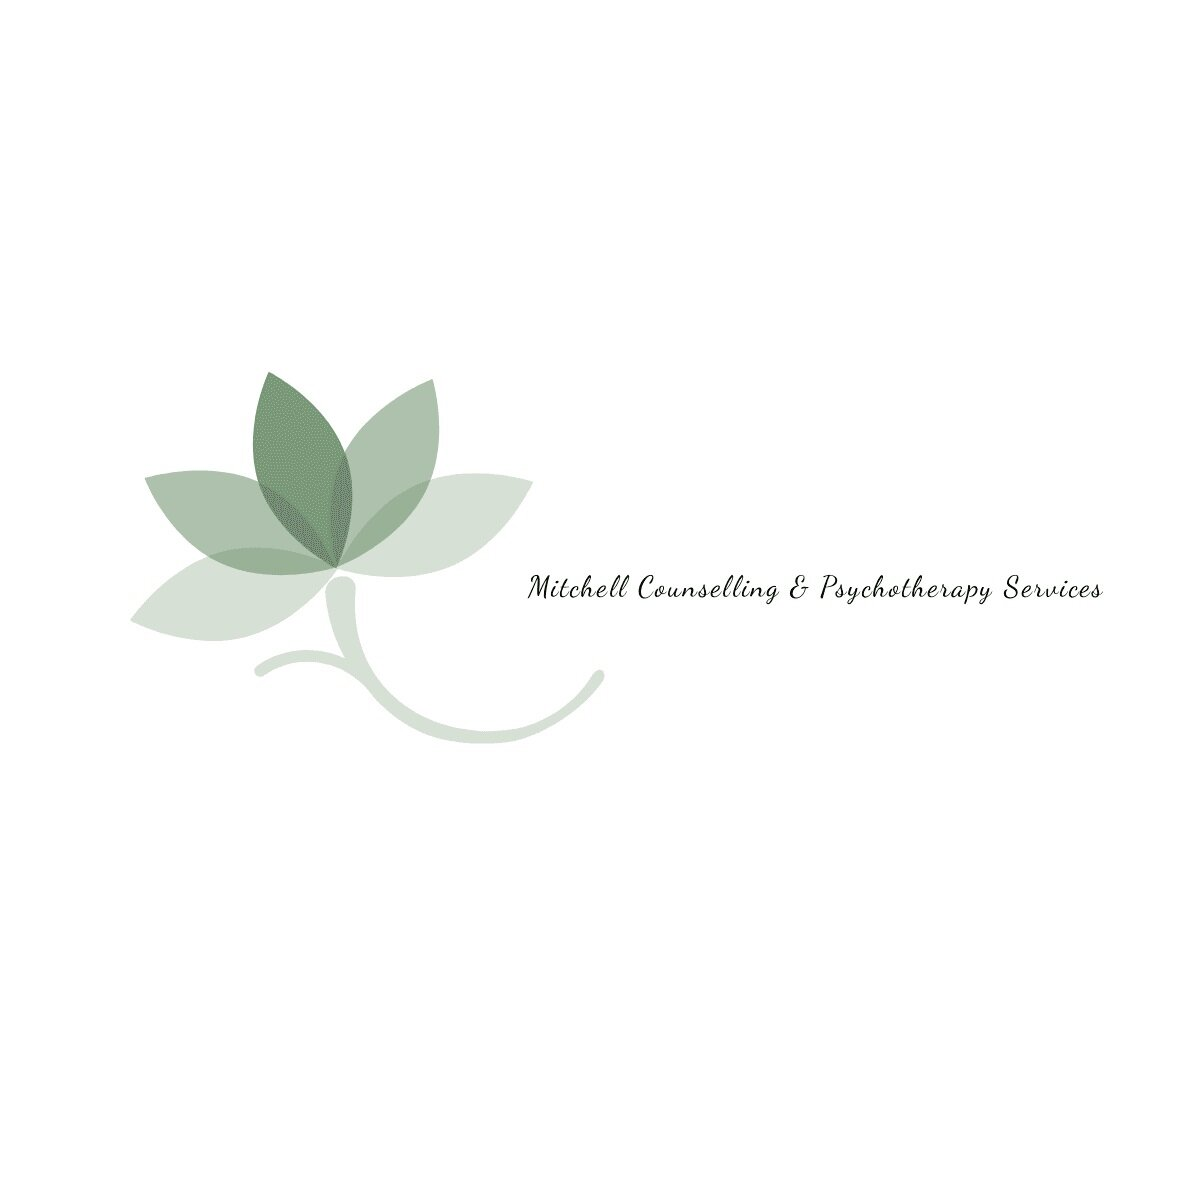 Mitchell Counselling & Psychotherapy Services logo